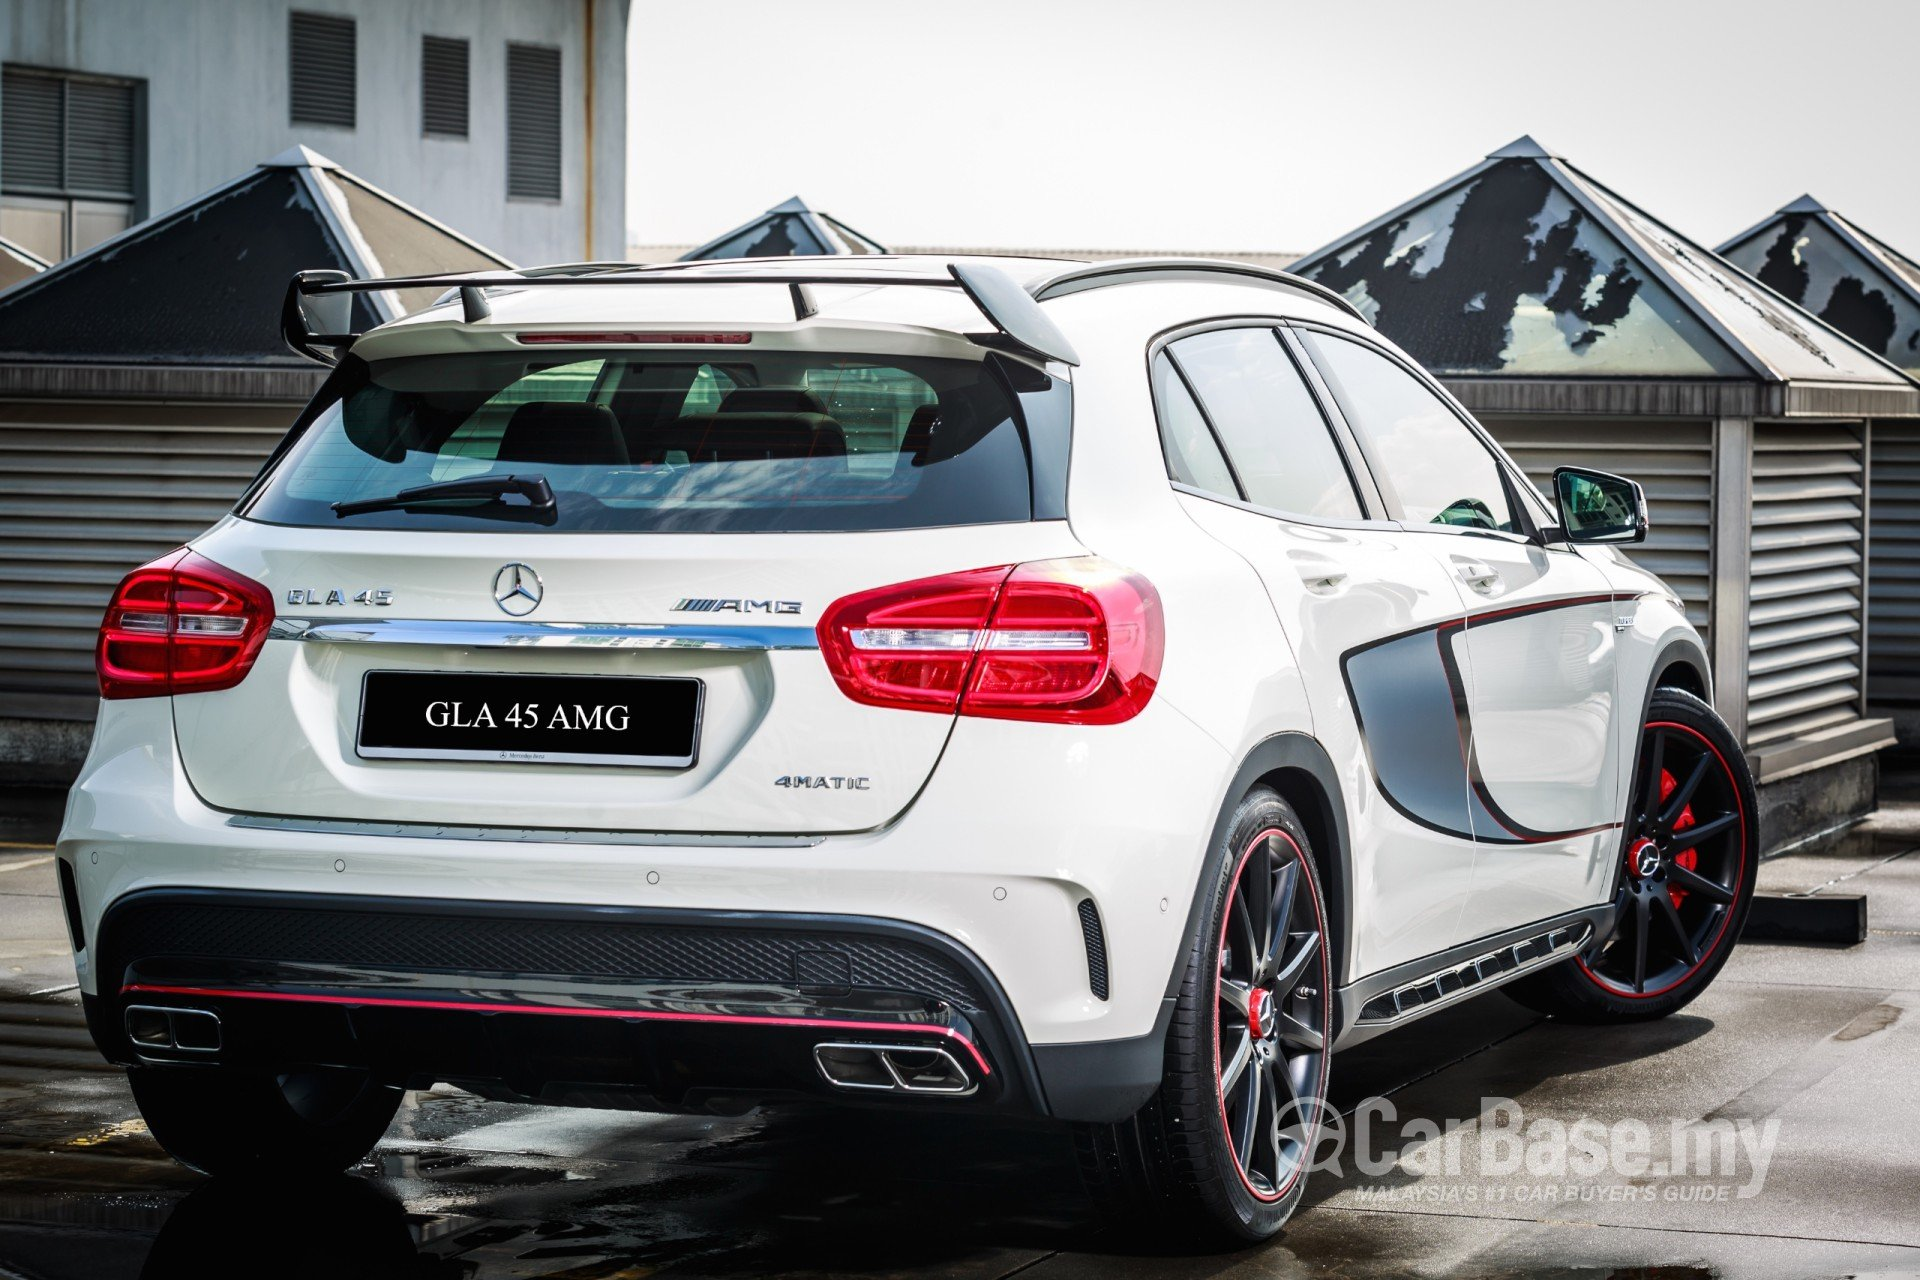 Mercedes benz gla amg x156 amg 2014 exterior image for Mercedes benz gla 2014 price